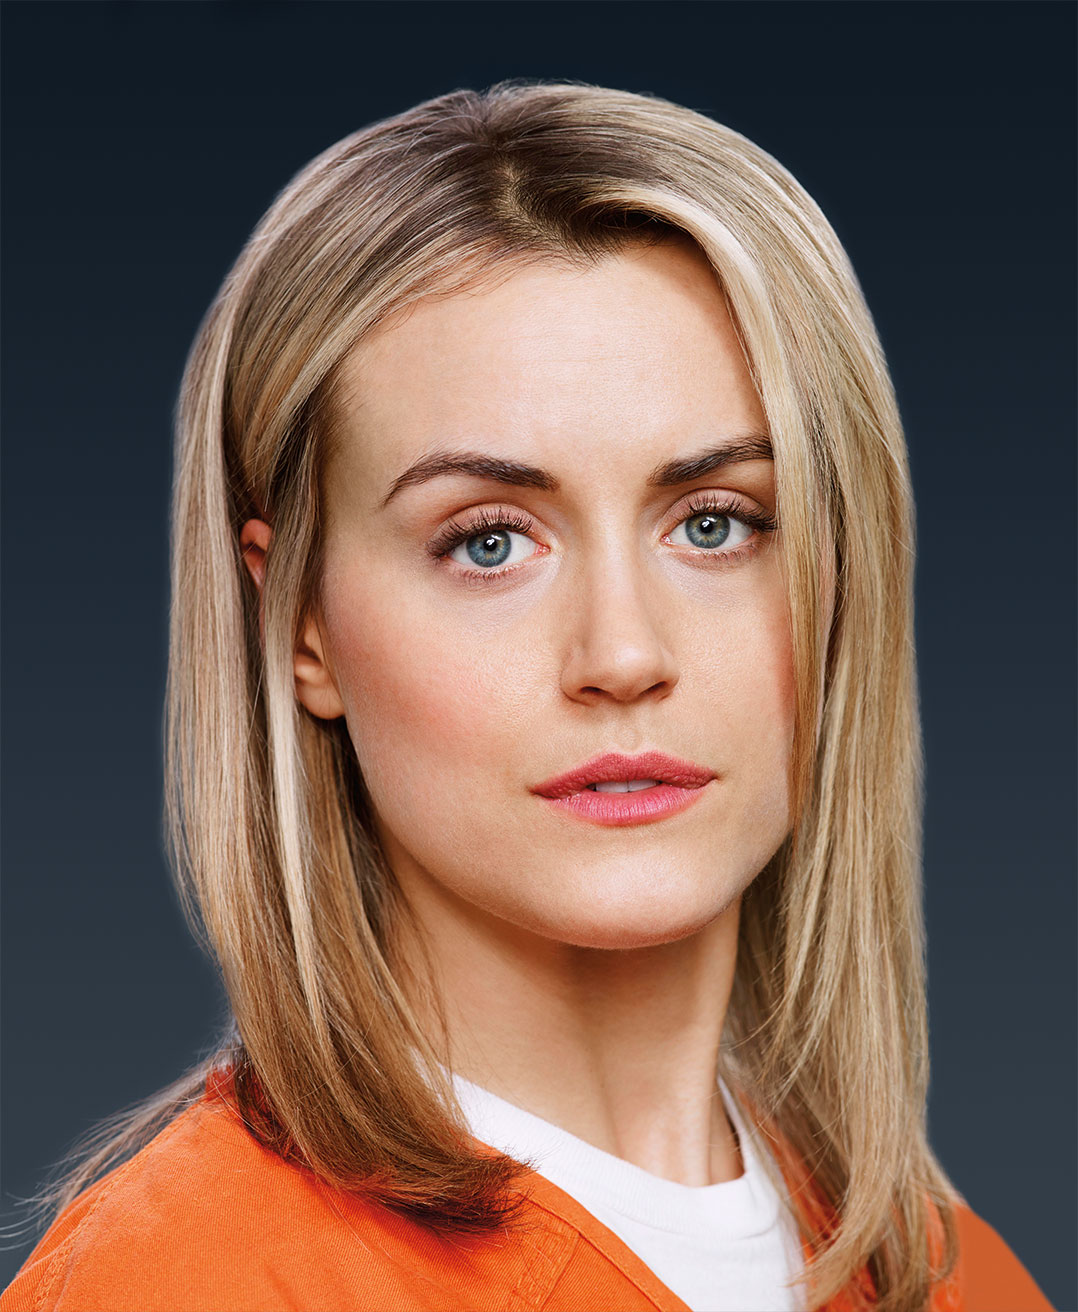 On Demand: The Art and Business of TV's New Golden AgeTaylor Schilling Roles